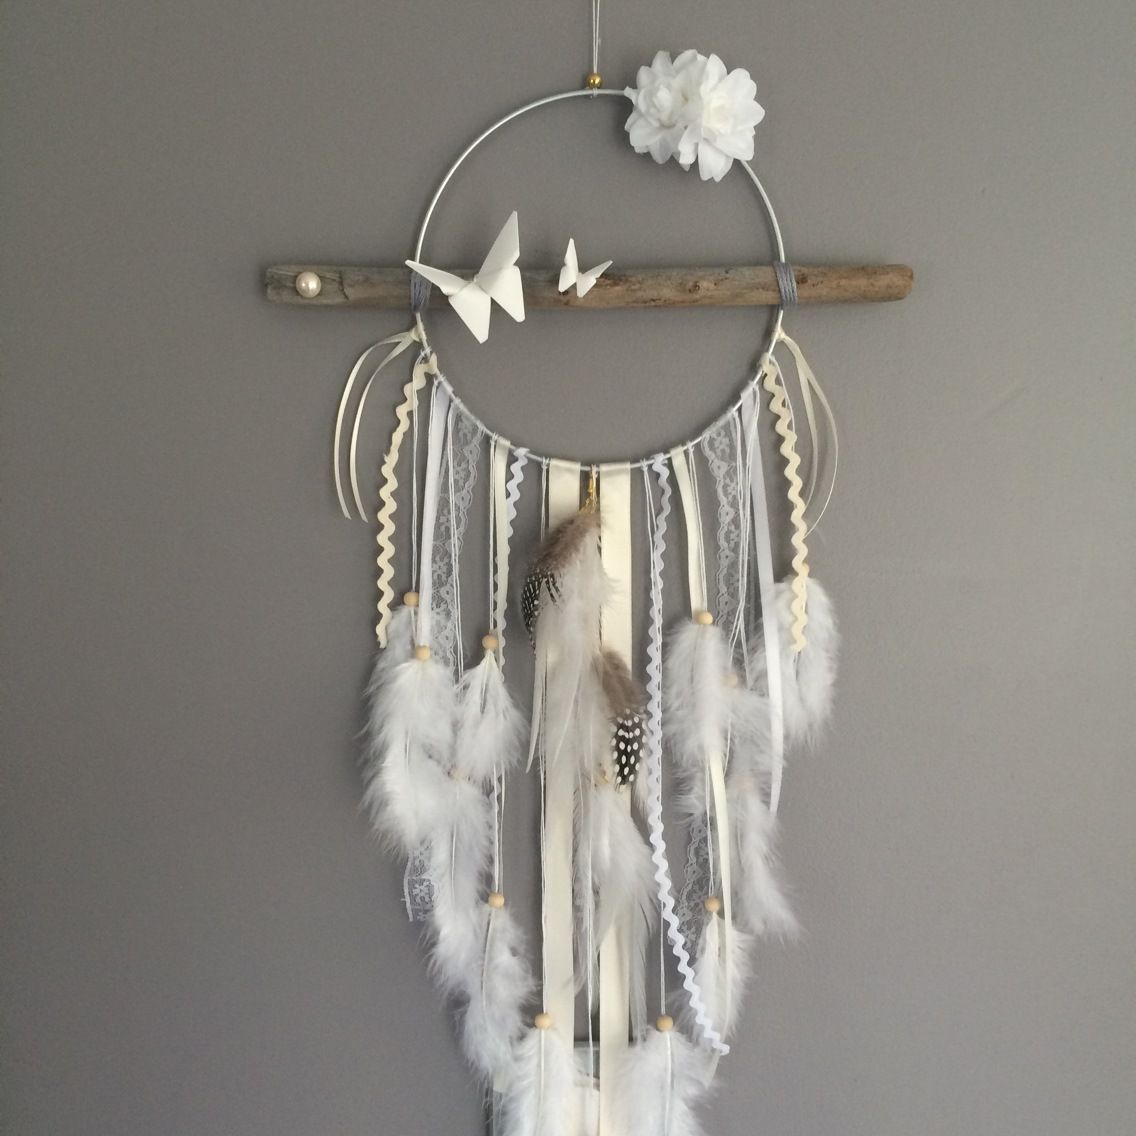 Attrape r ves dreamcatcher attrapeur de r ves en bois for Bois flotte decoration murale